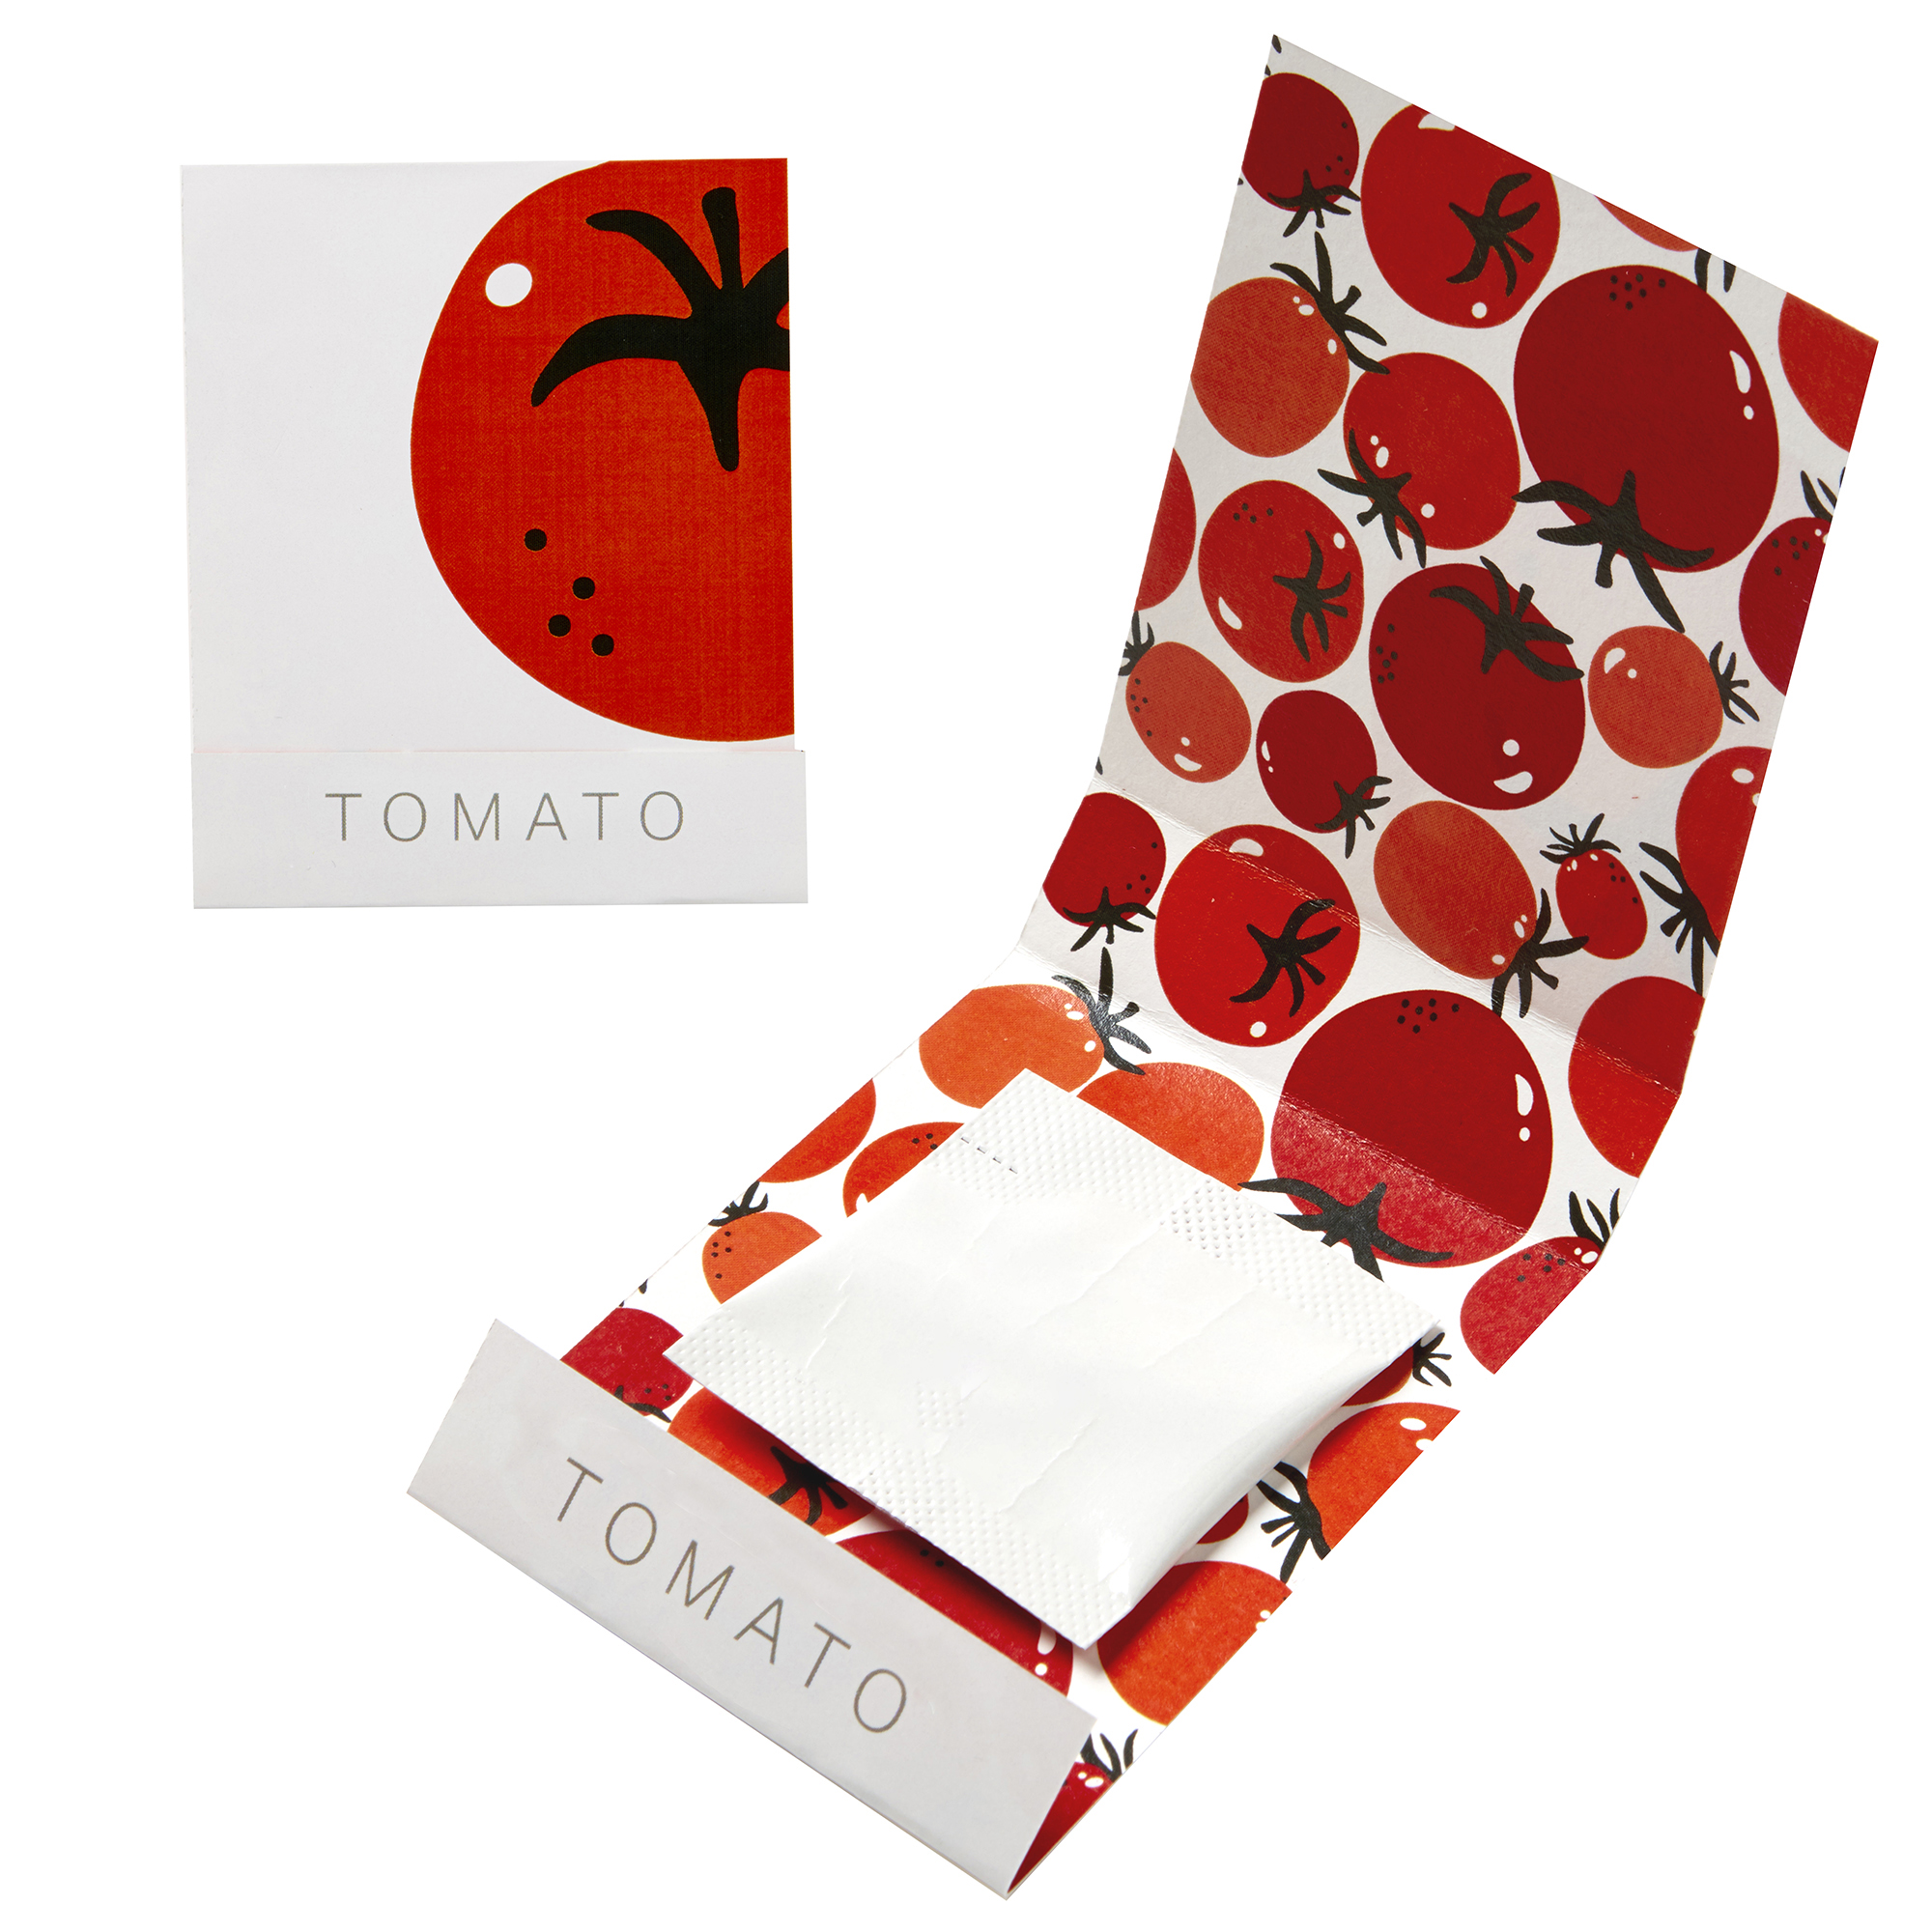 Tomato Seed Matchbook